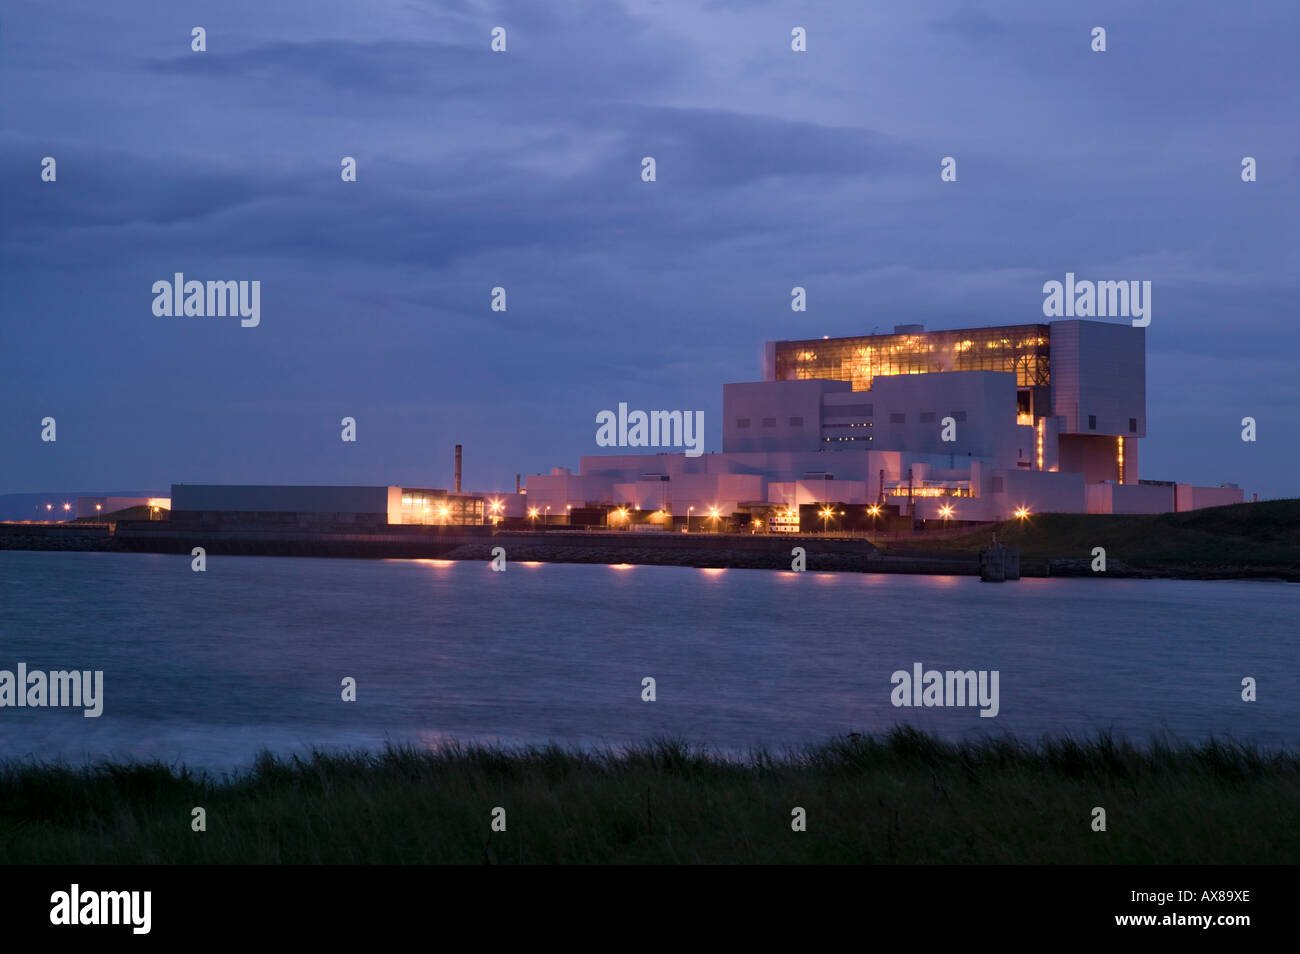 Torness Nuclear Power Station, near Dunbar, East Lothian, Scotland - Stock Image